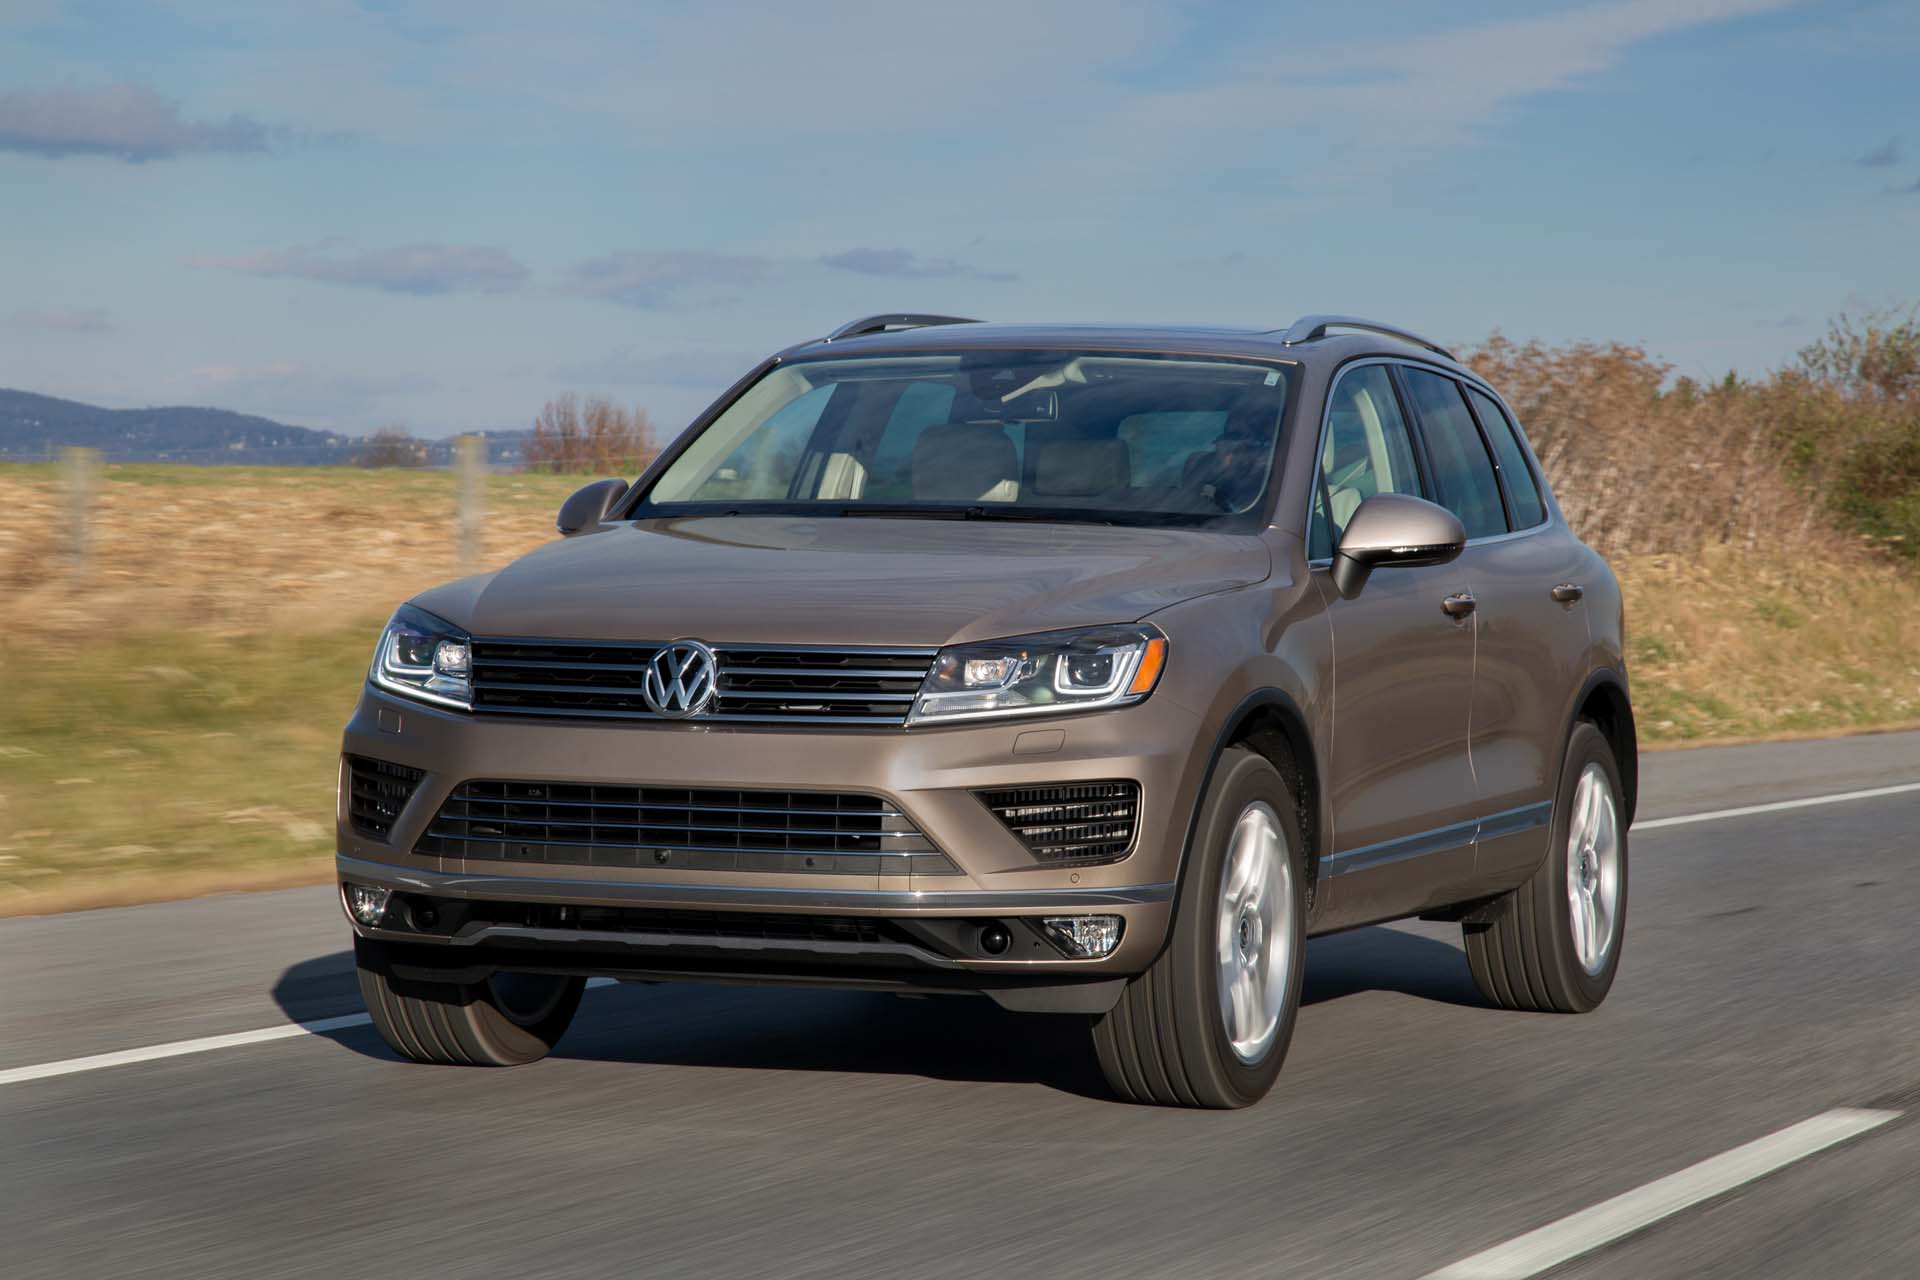 2017 volkswagen touareg vw gas mileage the car connection. Black Bedroom Furniture Sets. Home Design Ideas